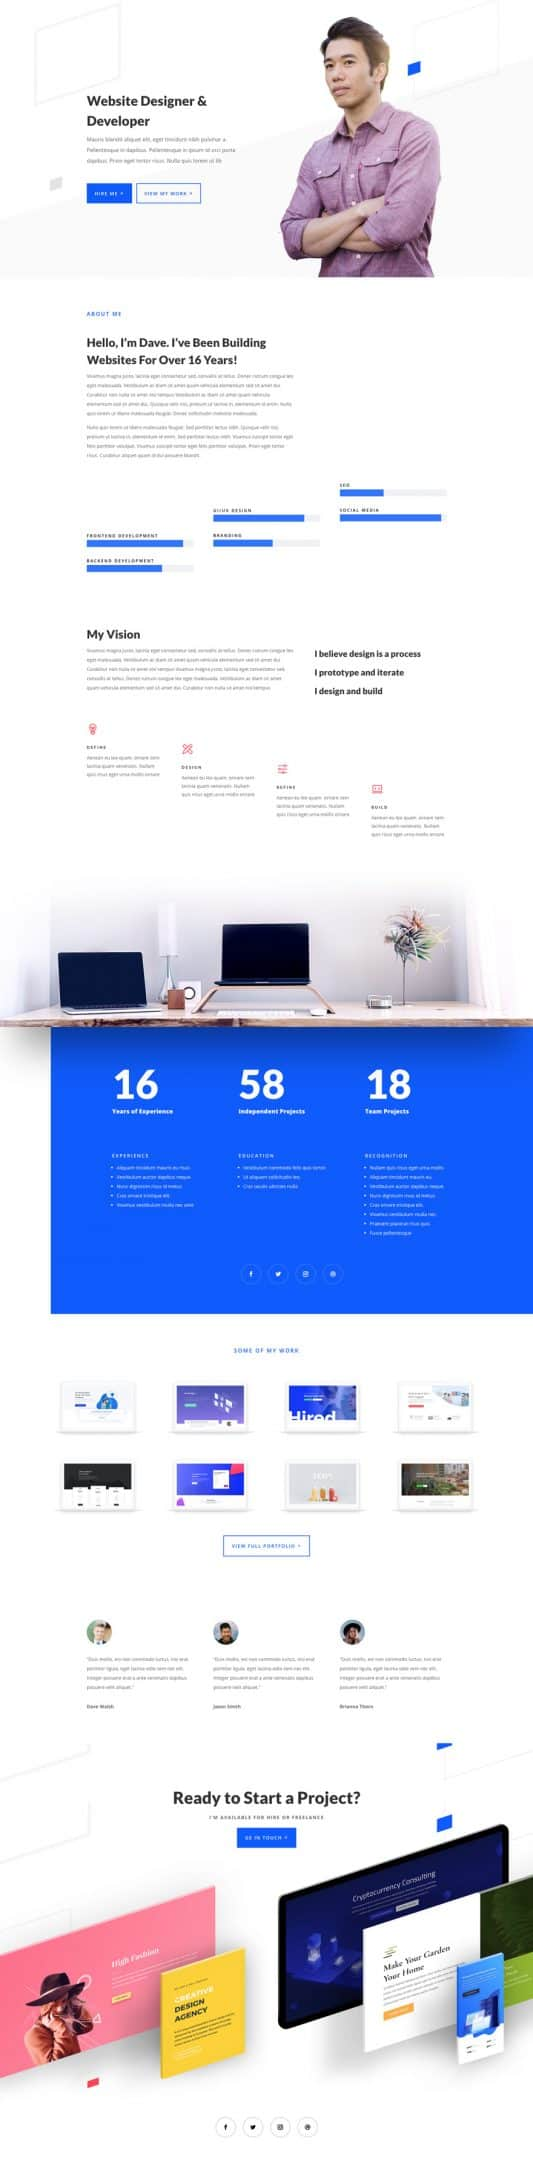 Web Freelancer Web Design 1